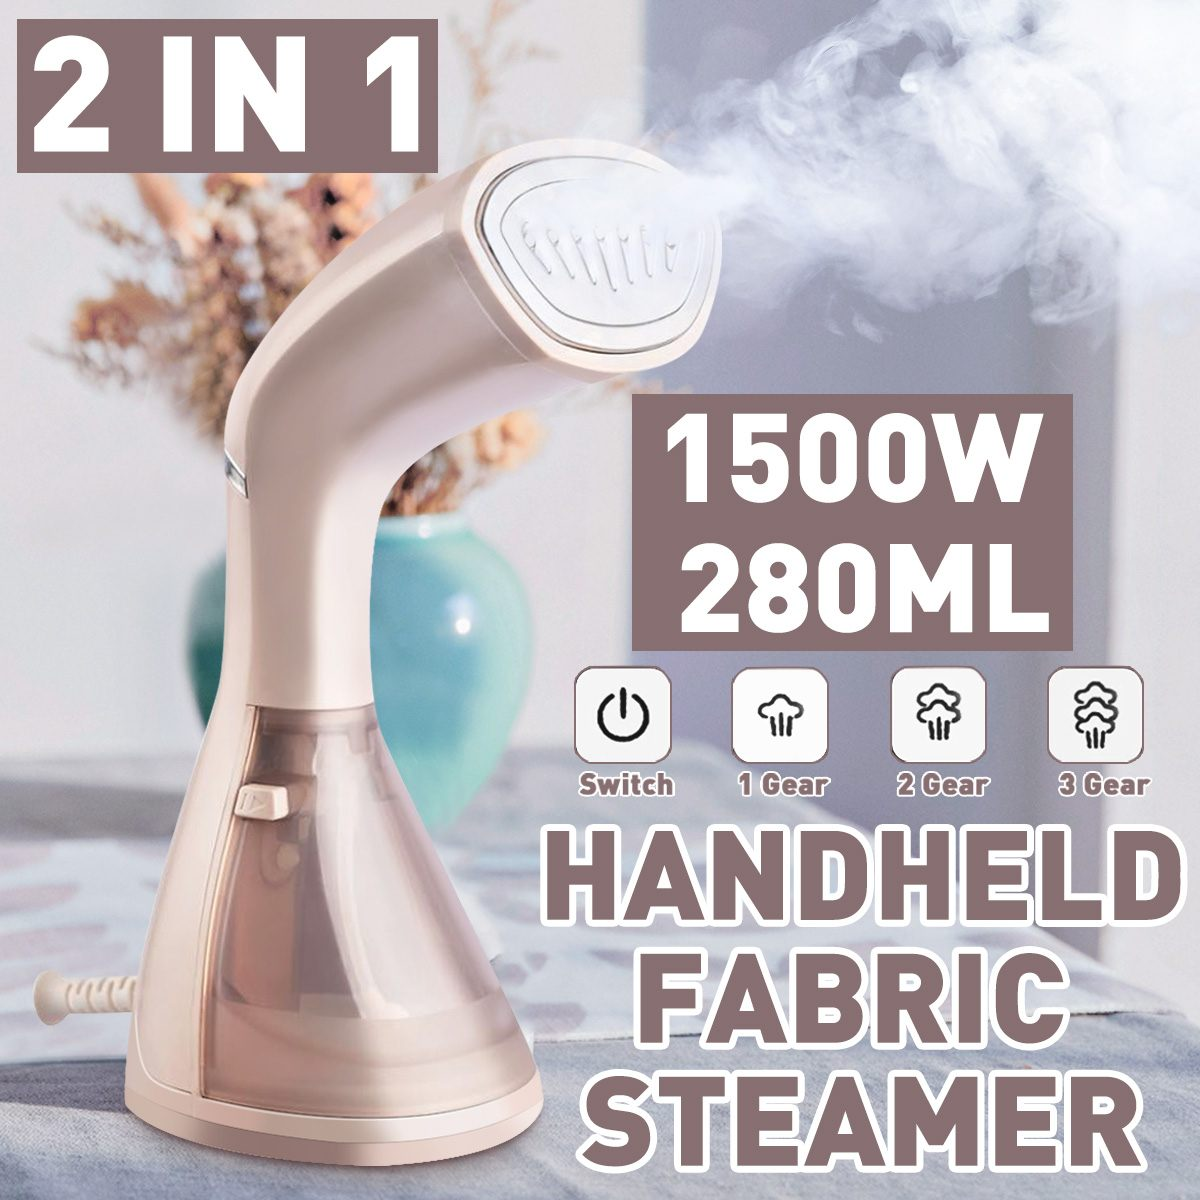 2 In 1 Handheld Steamer 1500W Powerful Garment Steamer Portable 15 Seconds Fast Heat Steam Iron Ironing Machine For Home Travel